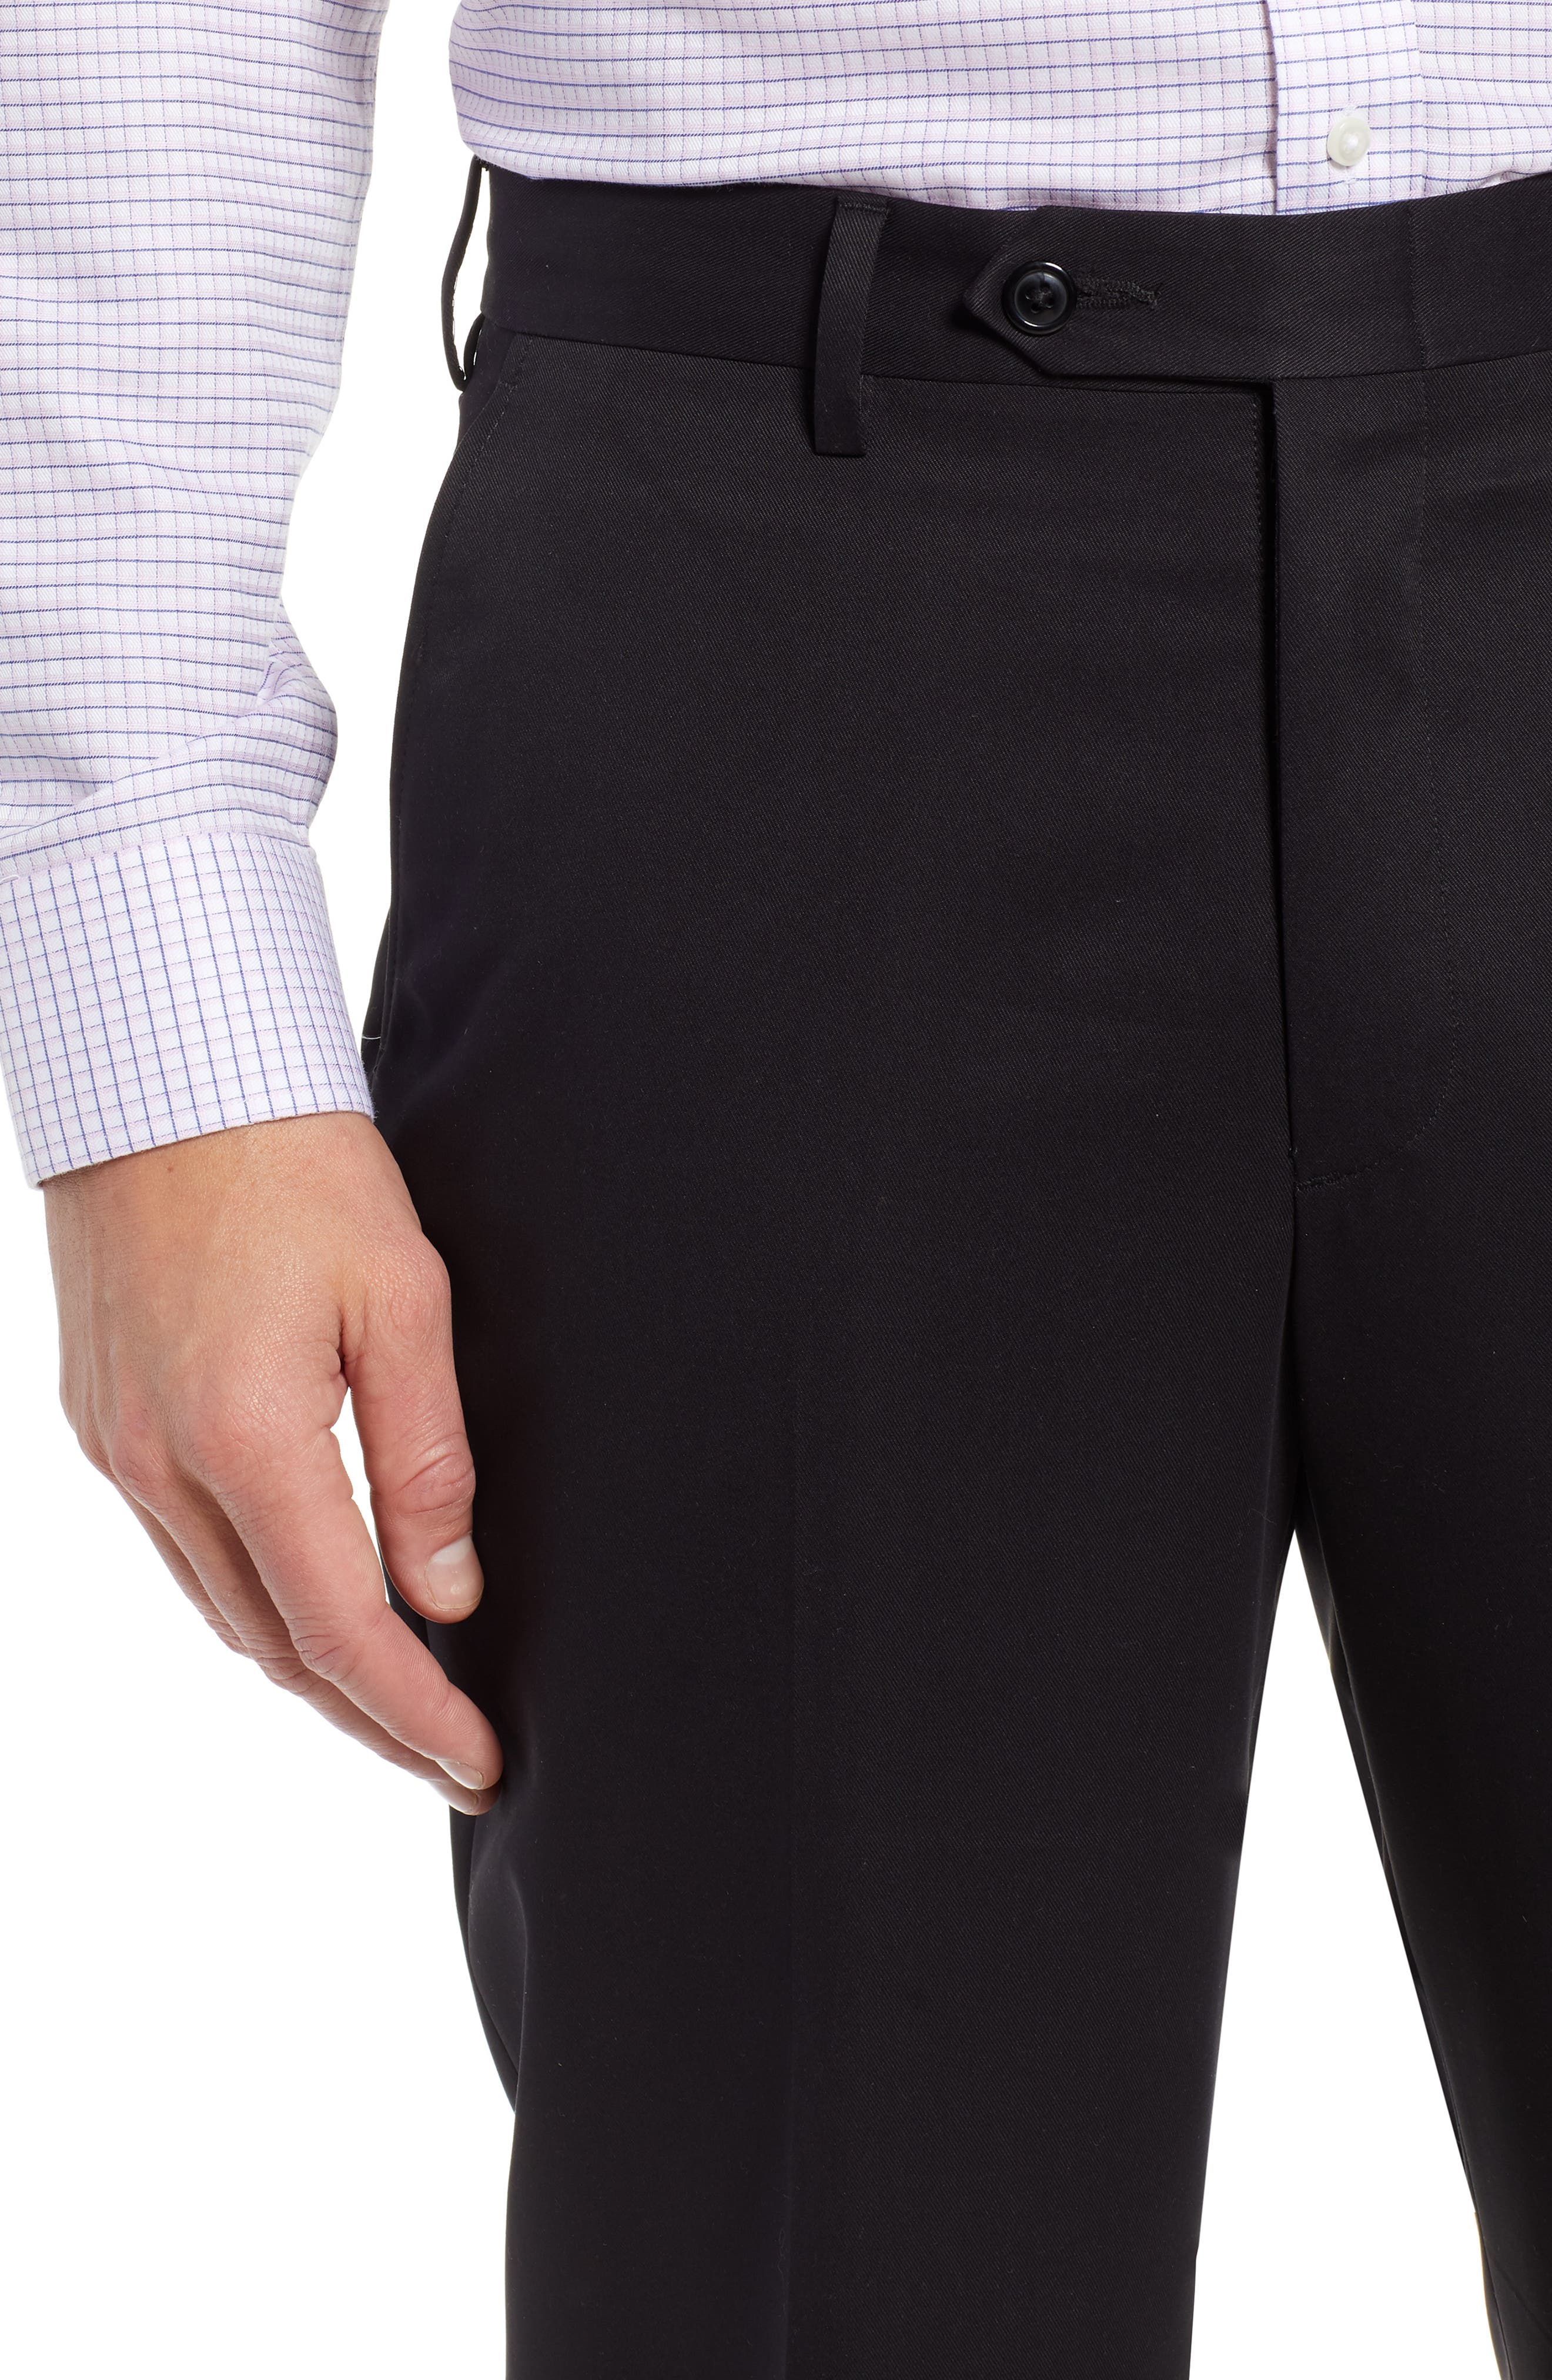 Classic Fit Flat Front Microfiber Performance Trousers,                             Alternate thumbnail 4, color,                             BLACK